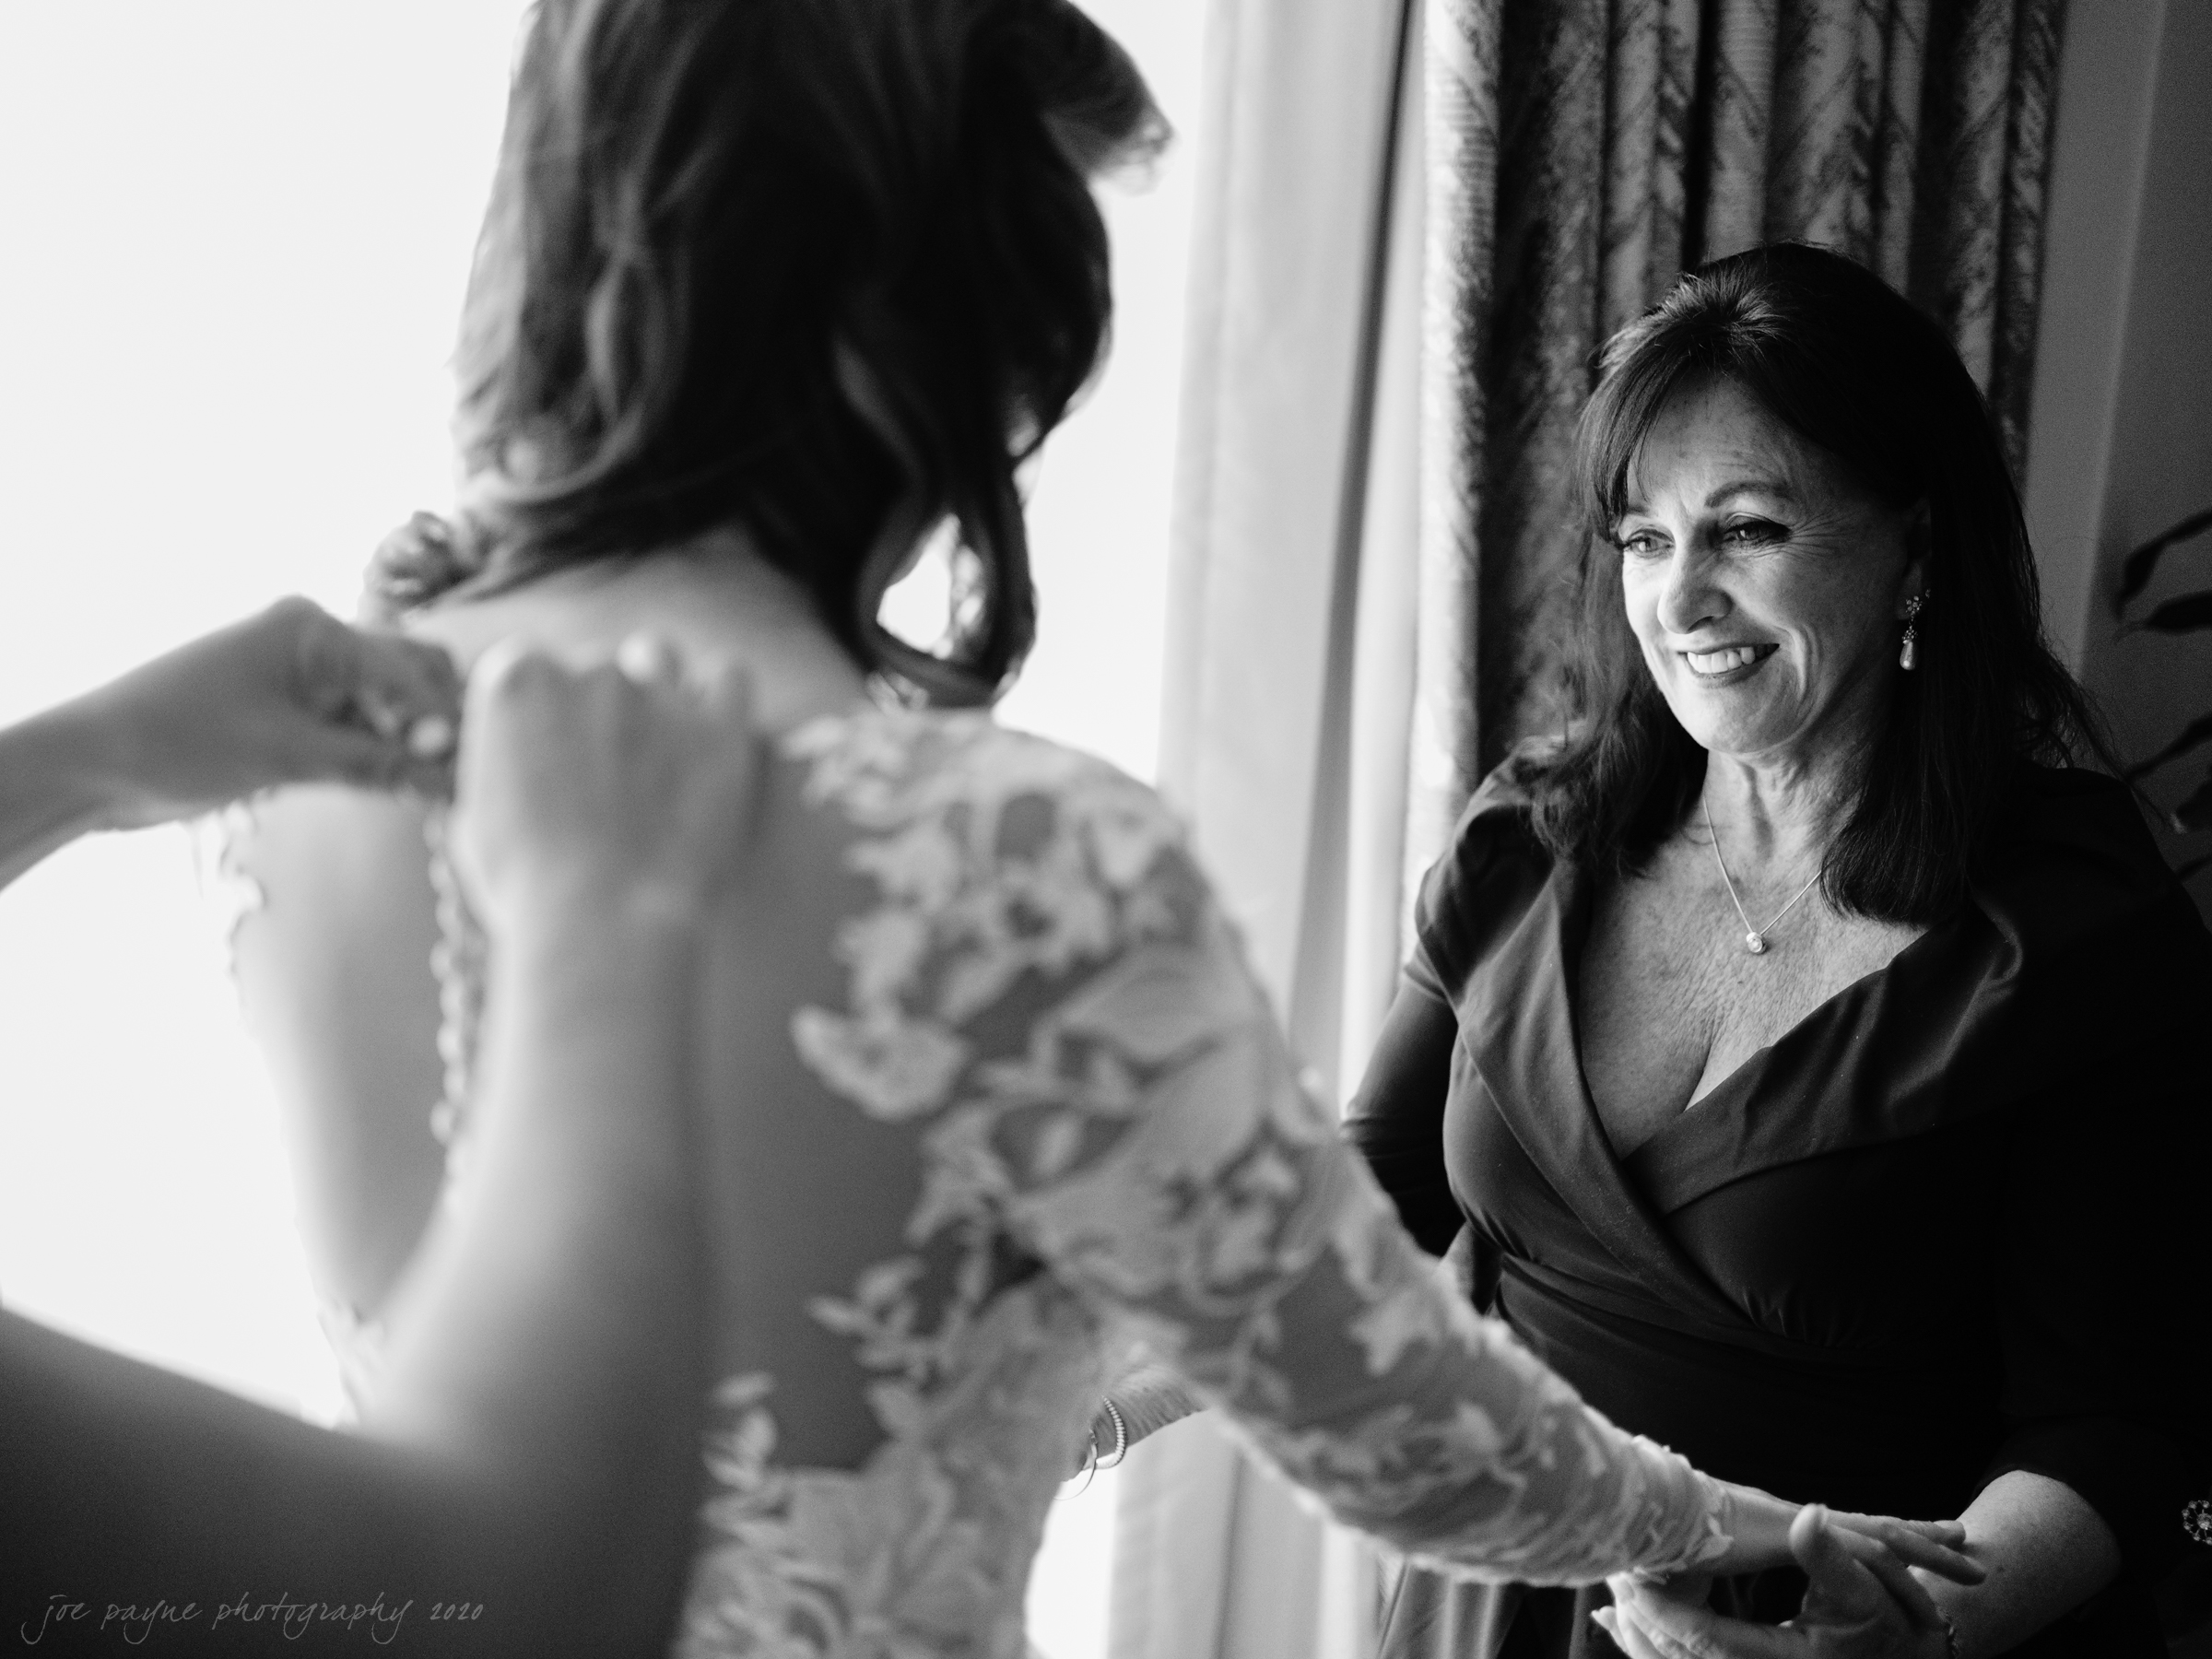 umstead hotel park wedding photography brittany harrison 2 3